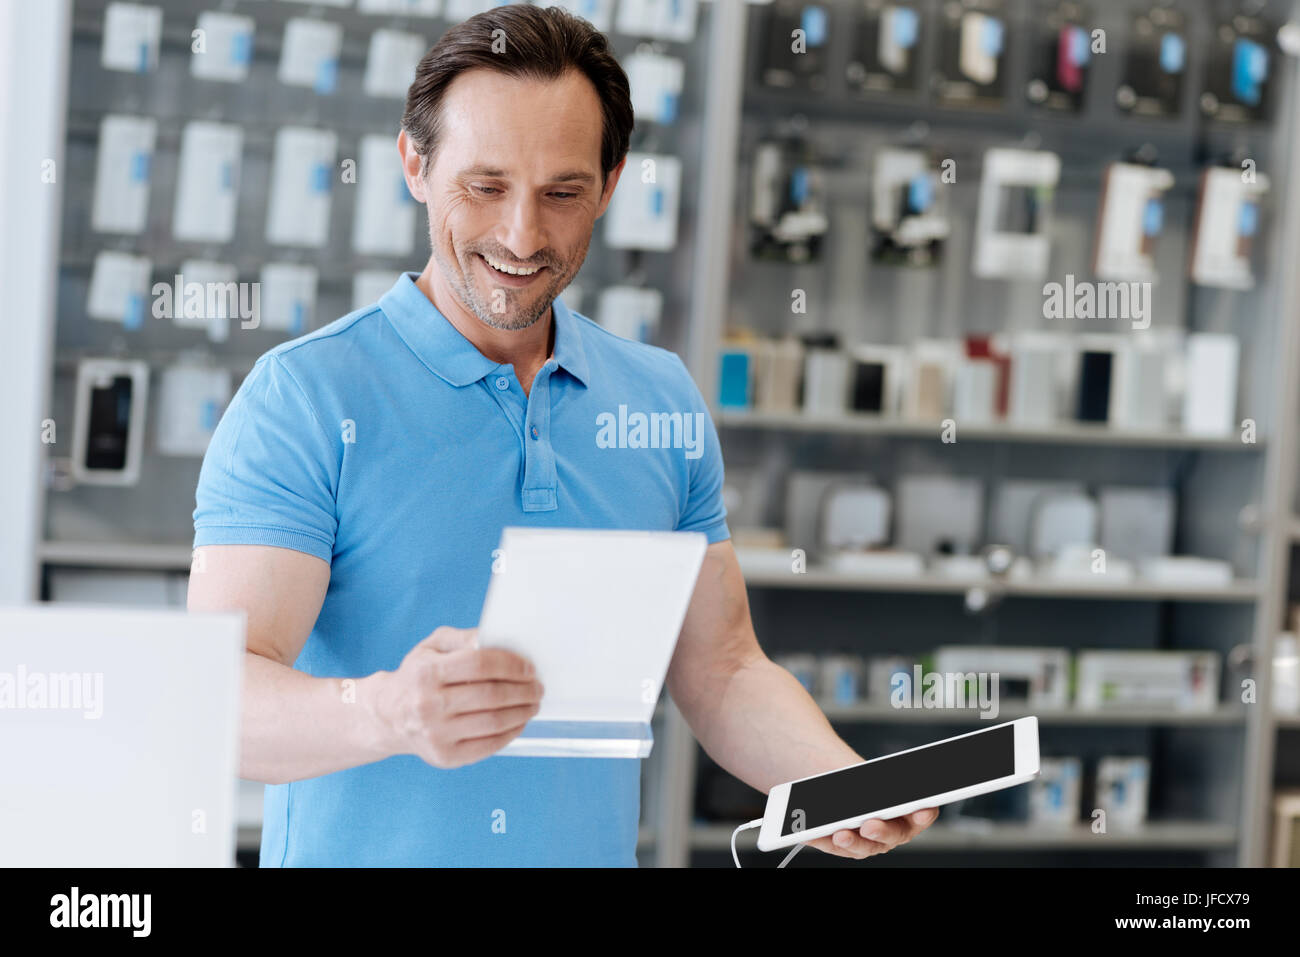 This model is perfect for me. Adult man wearing a bright blue polo smiling to himself while choosing a new gadget - Stock Image